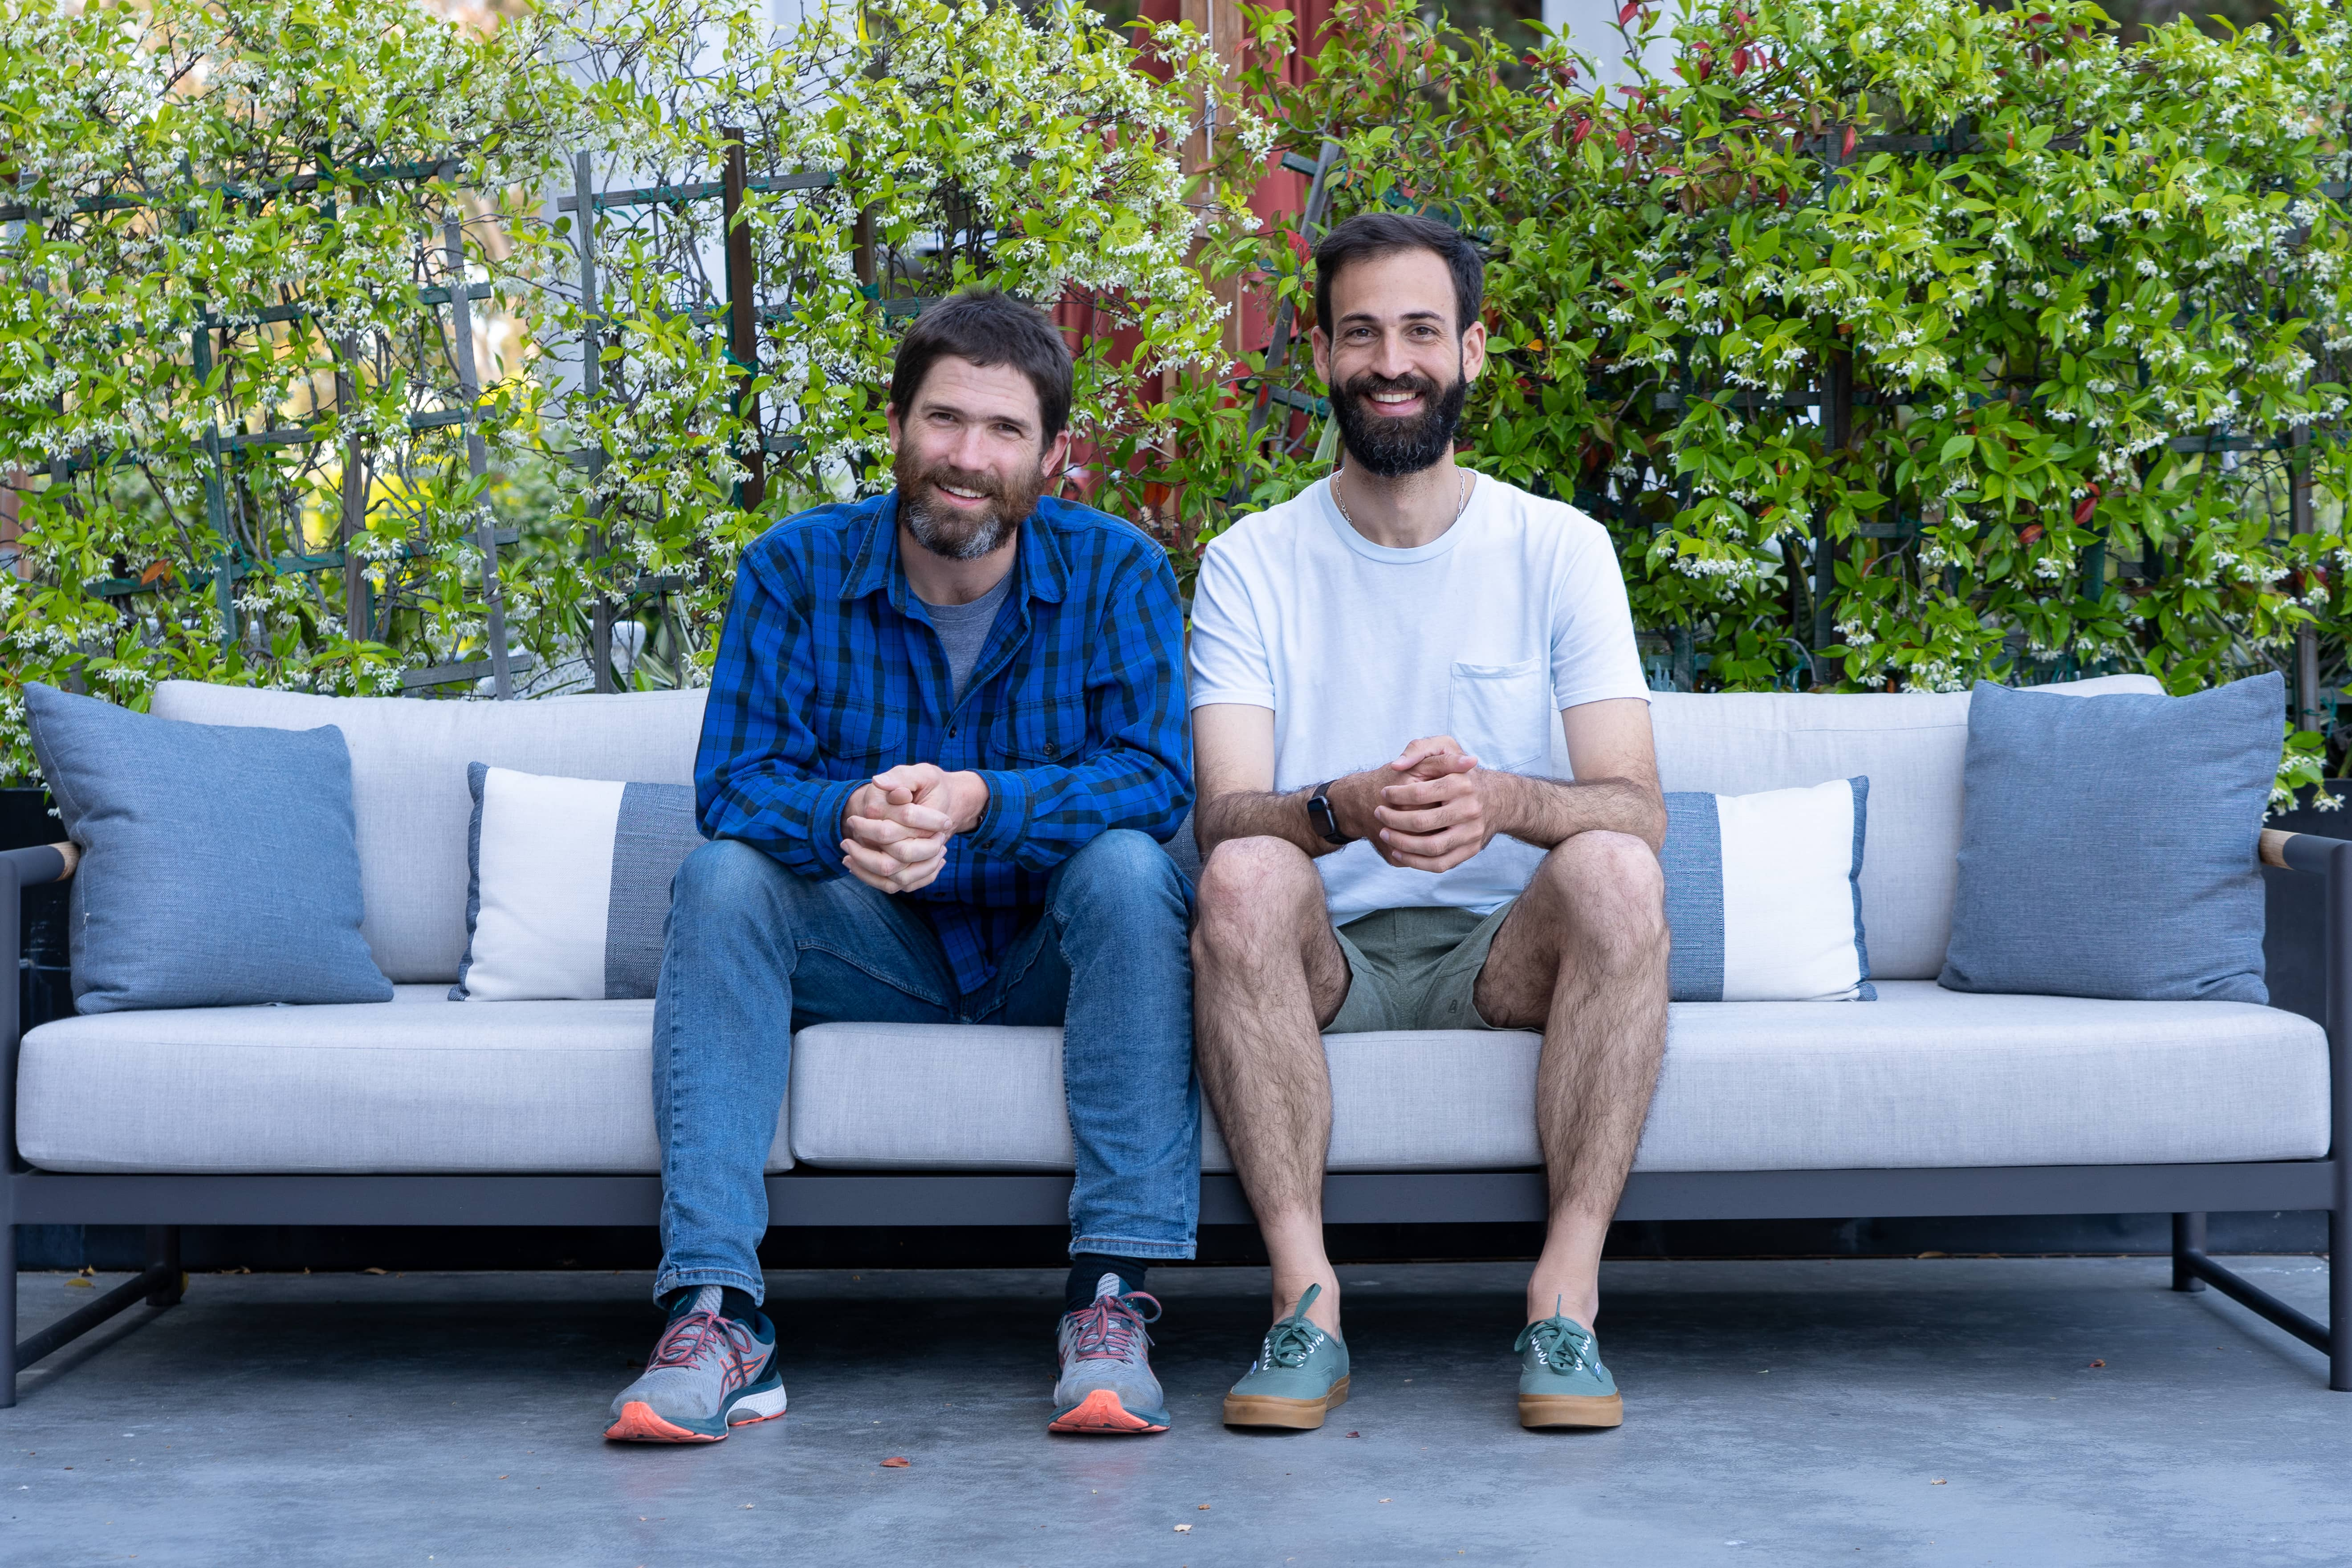 RevenueCat founders Jacob Eiting and Miguel Carranza